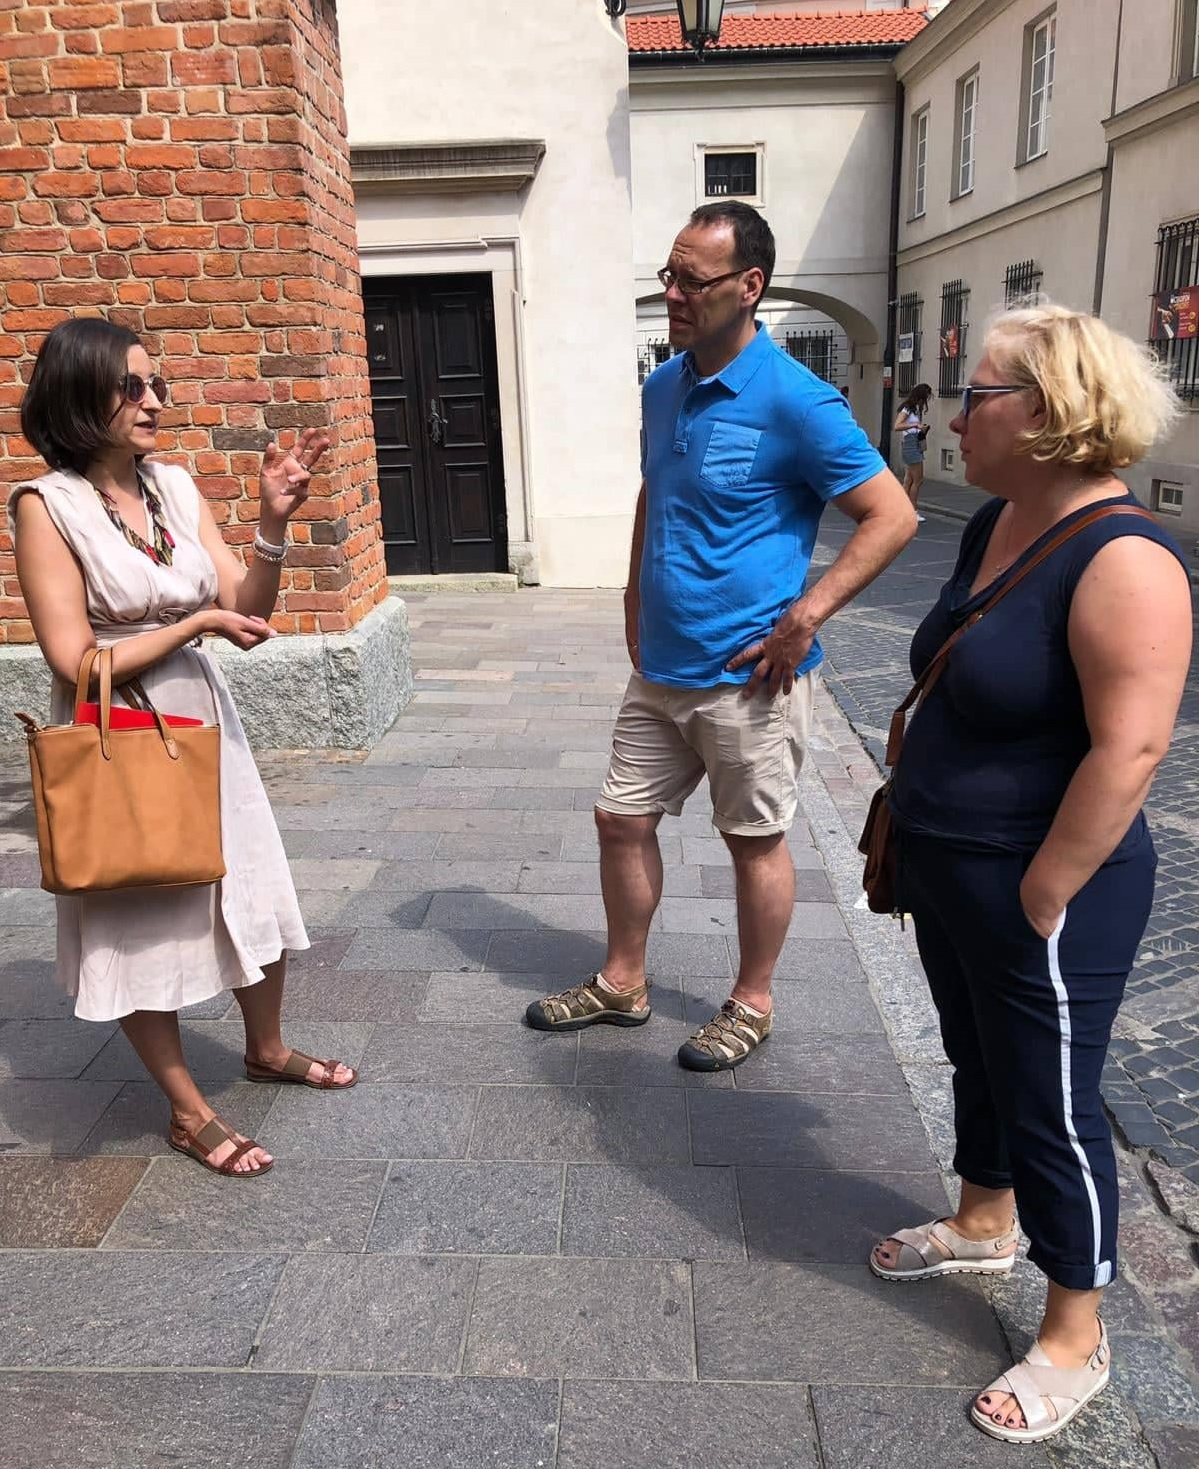 "Step in Warsaw - City guide to Warsaw. Warsaw for everyone, the younger and the older ones. That kind of Polish-German tourist group came from Germany, from Munich. At work: ""Saint John the Baptist Archcathedral is one of three coronation churches in Poland"". Warsaw, 08.08.2019."